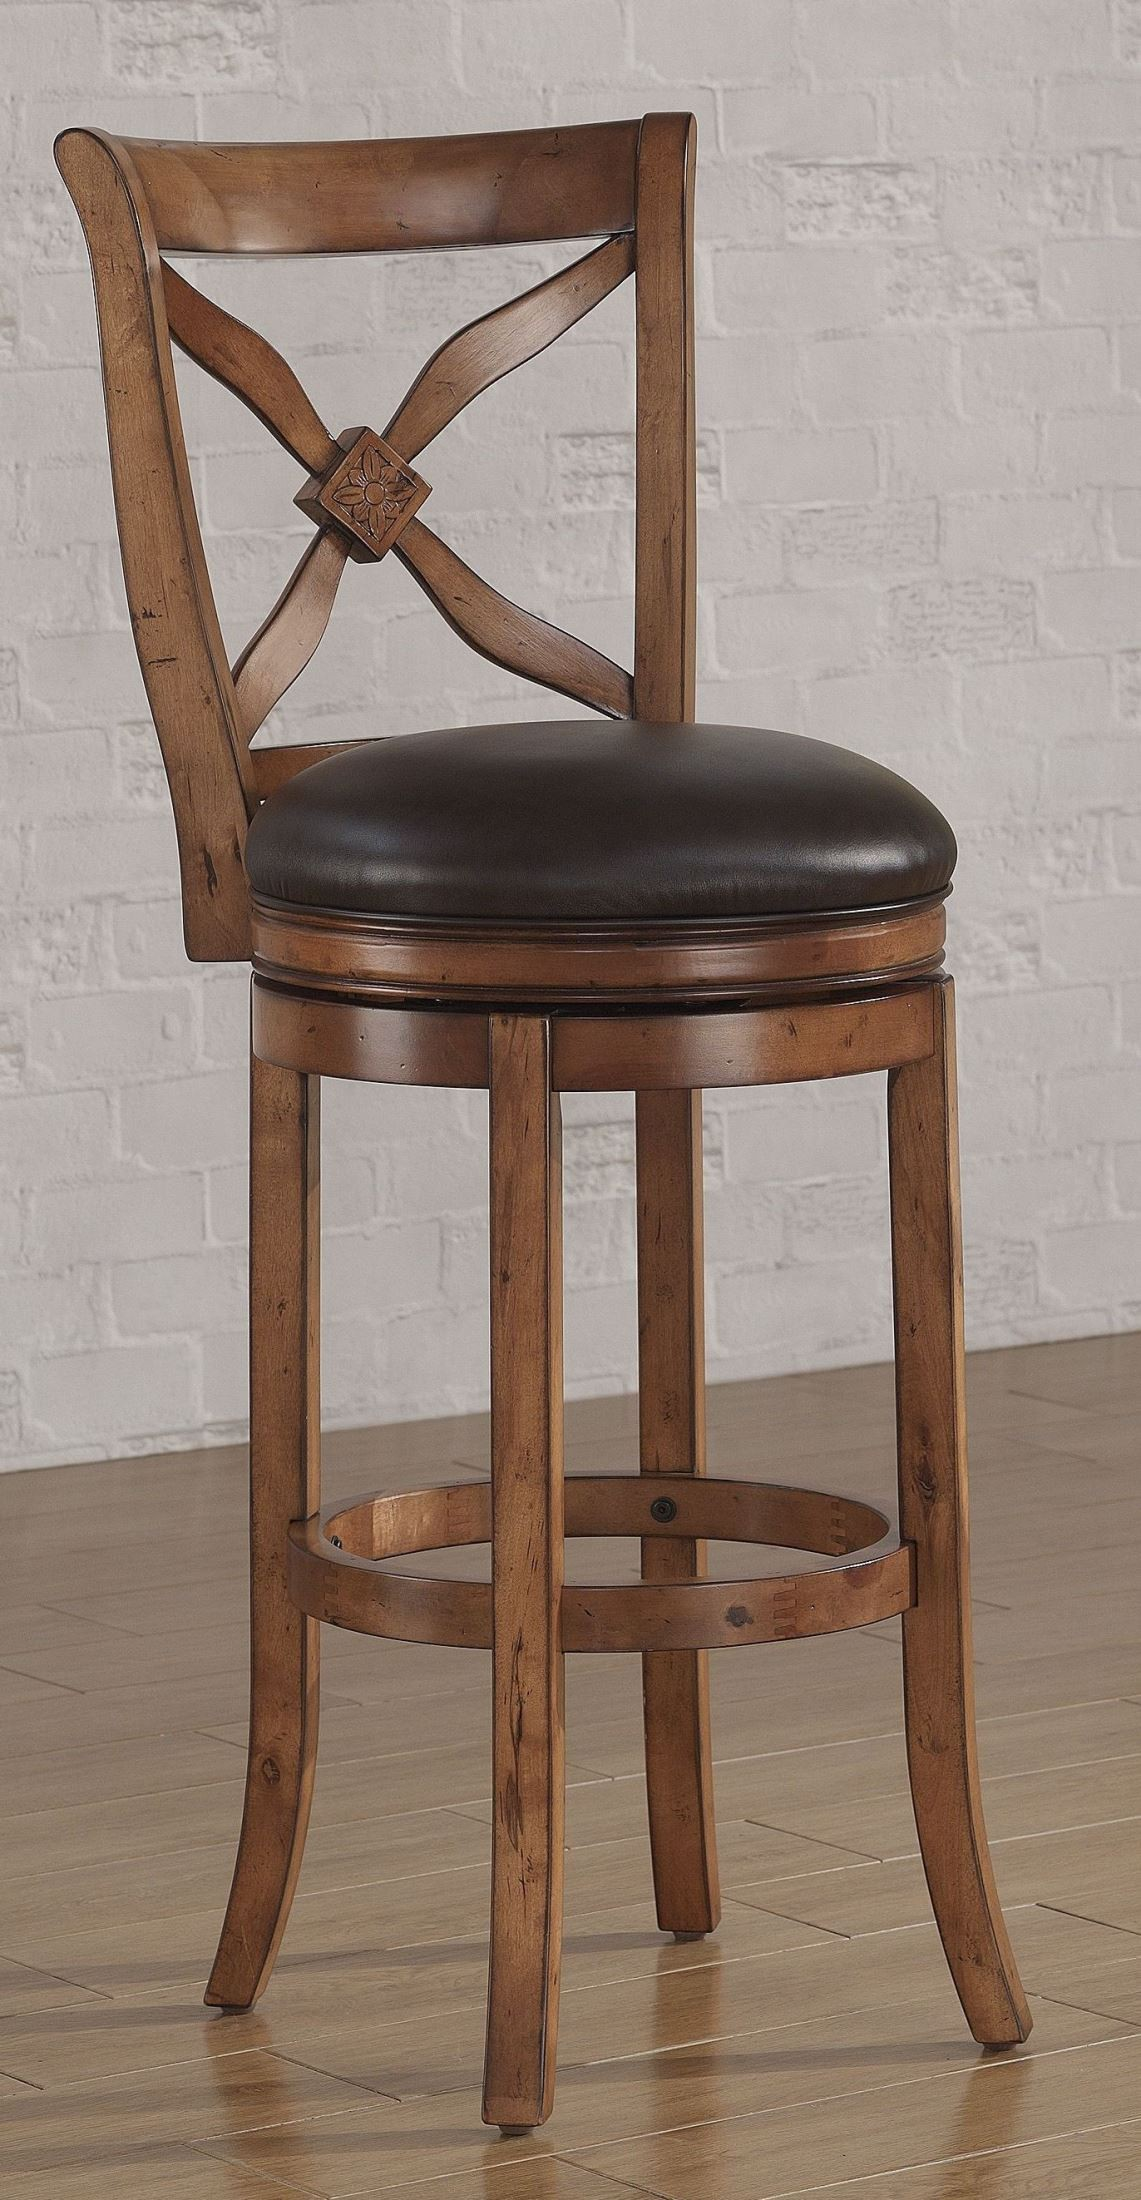 B2 201 30L Brown Wood Frame Back Bar Stool from American  : 201stool 11 from colemanfurniture.com size 1141 x 2200 jpeg 473kB